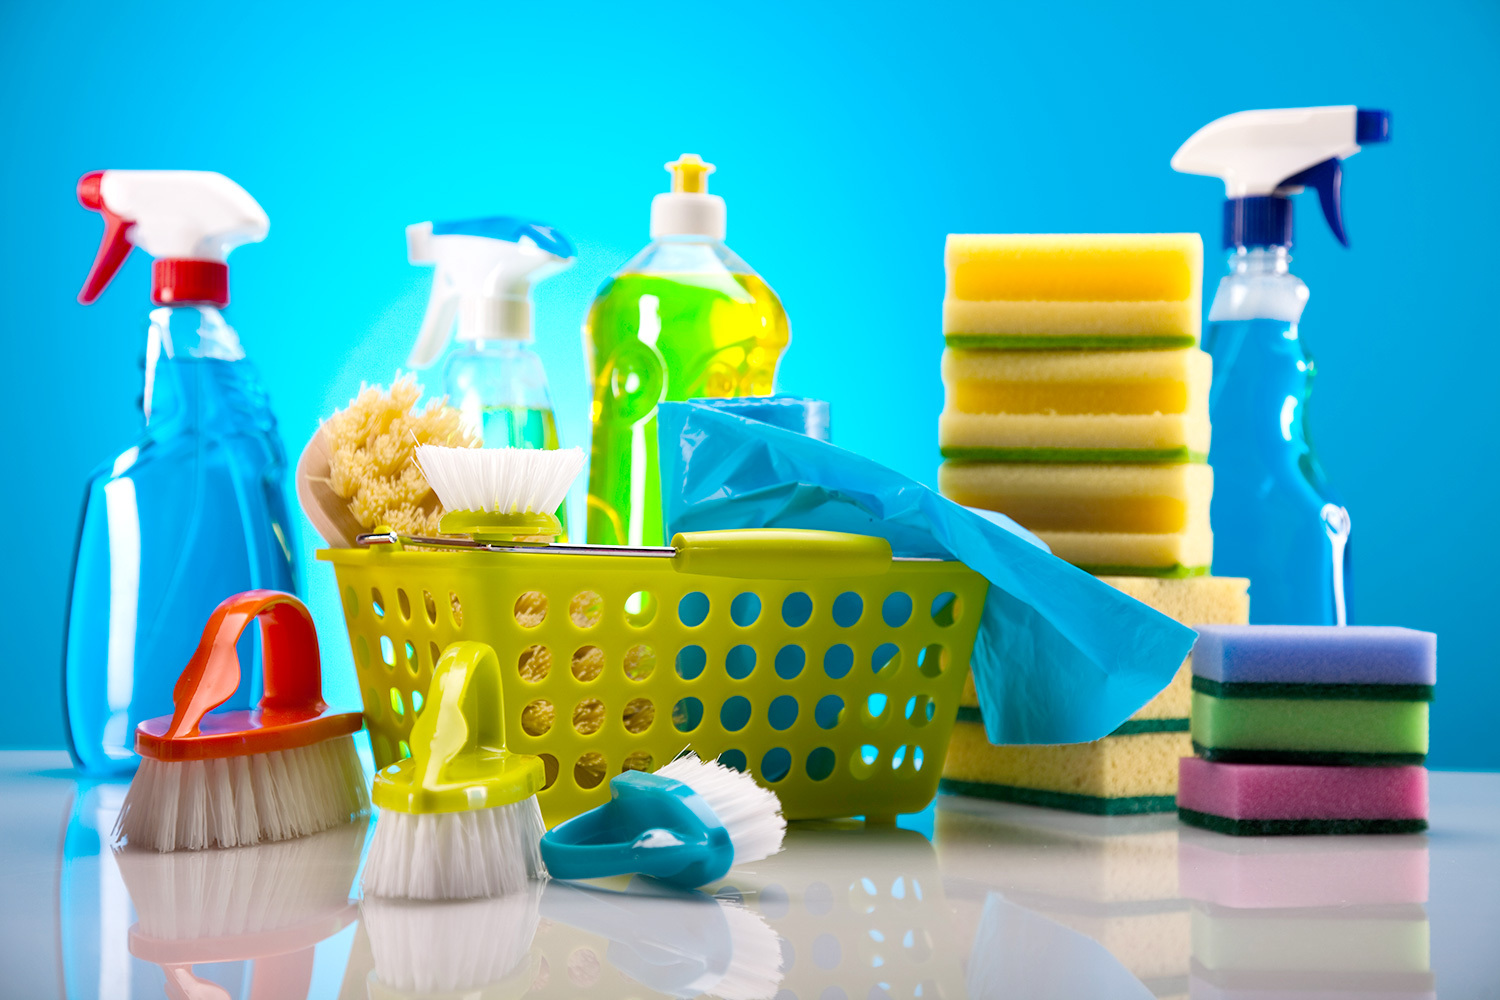 service quality in cleaning service Quality cleaning service with over 15 years of experience in the cleaning service industry, we are the experts you need to take care of your home or business we handle everything from move out to janitorial to large commercial jobs.